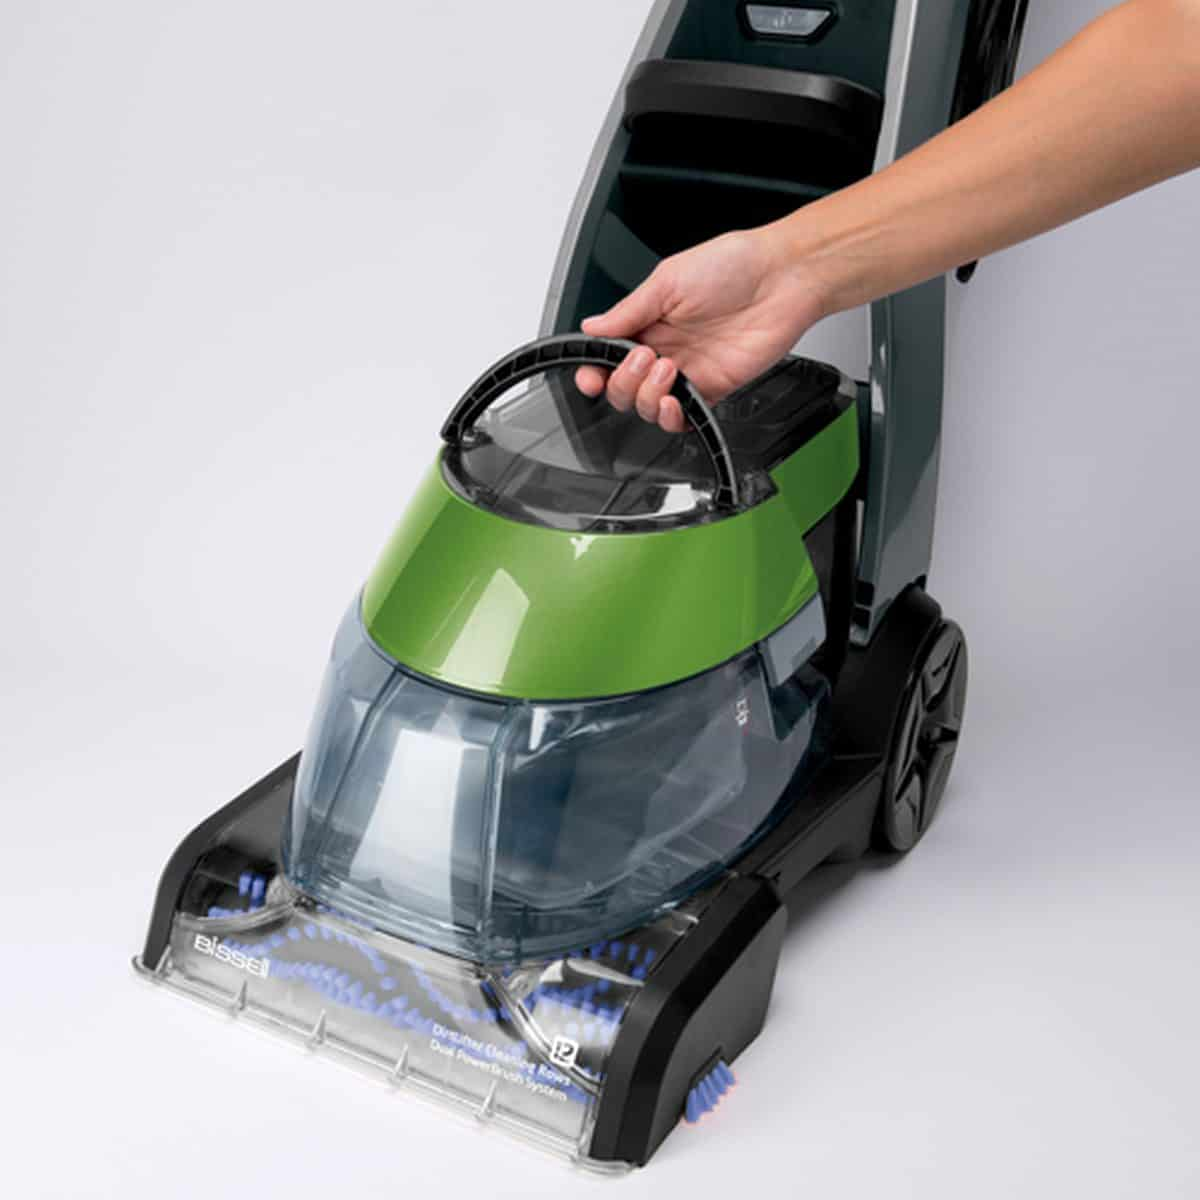 Bissell DeepClean Premier Pet Upright Carpet Cleaner | Top Gadgets To Speed Up Your Spring Cleaning